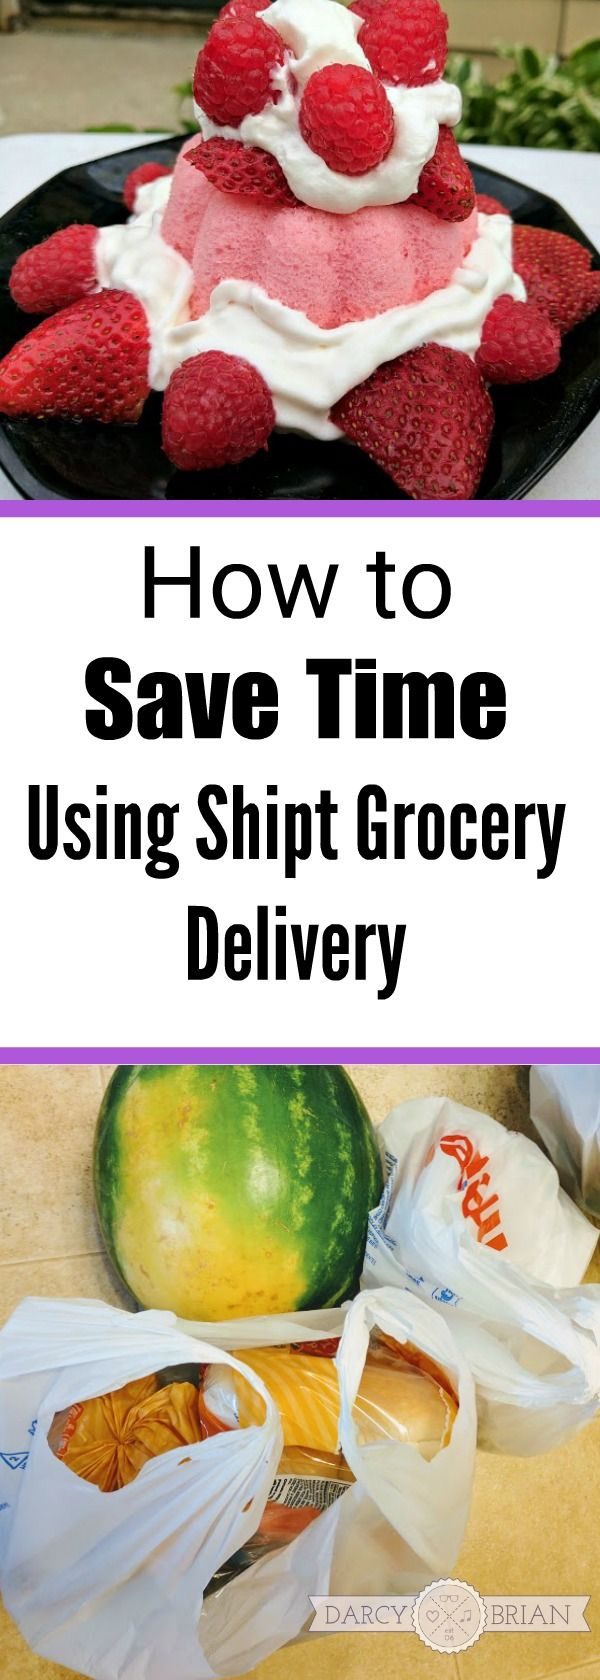 Save Time With Shipt On Demand Grocery Delivery From